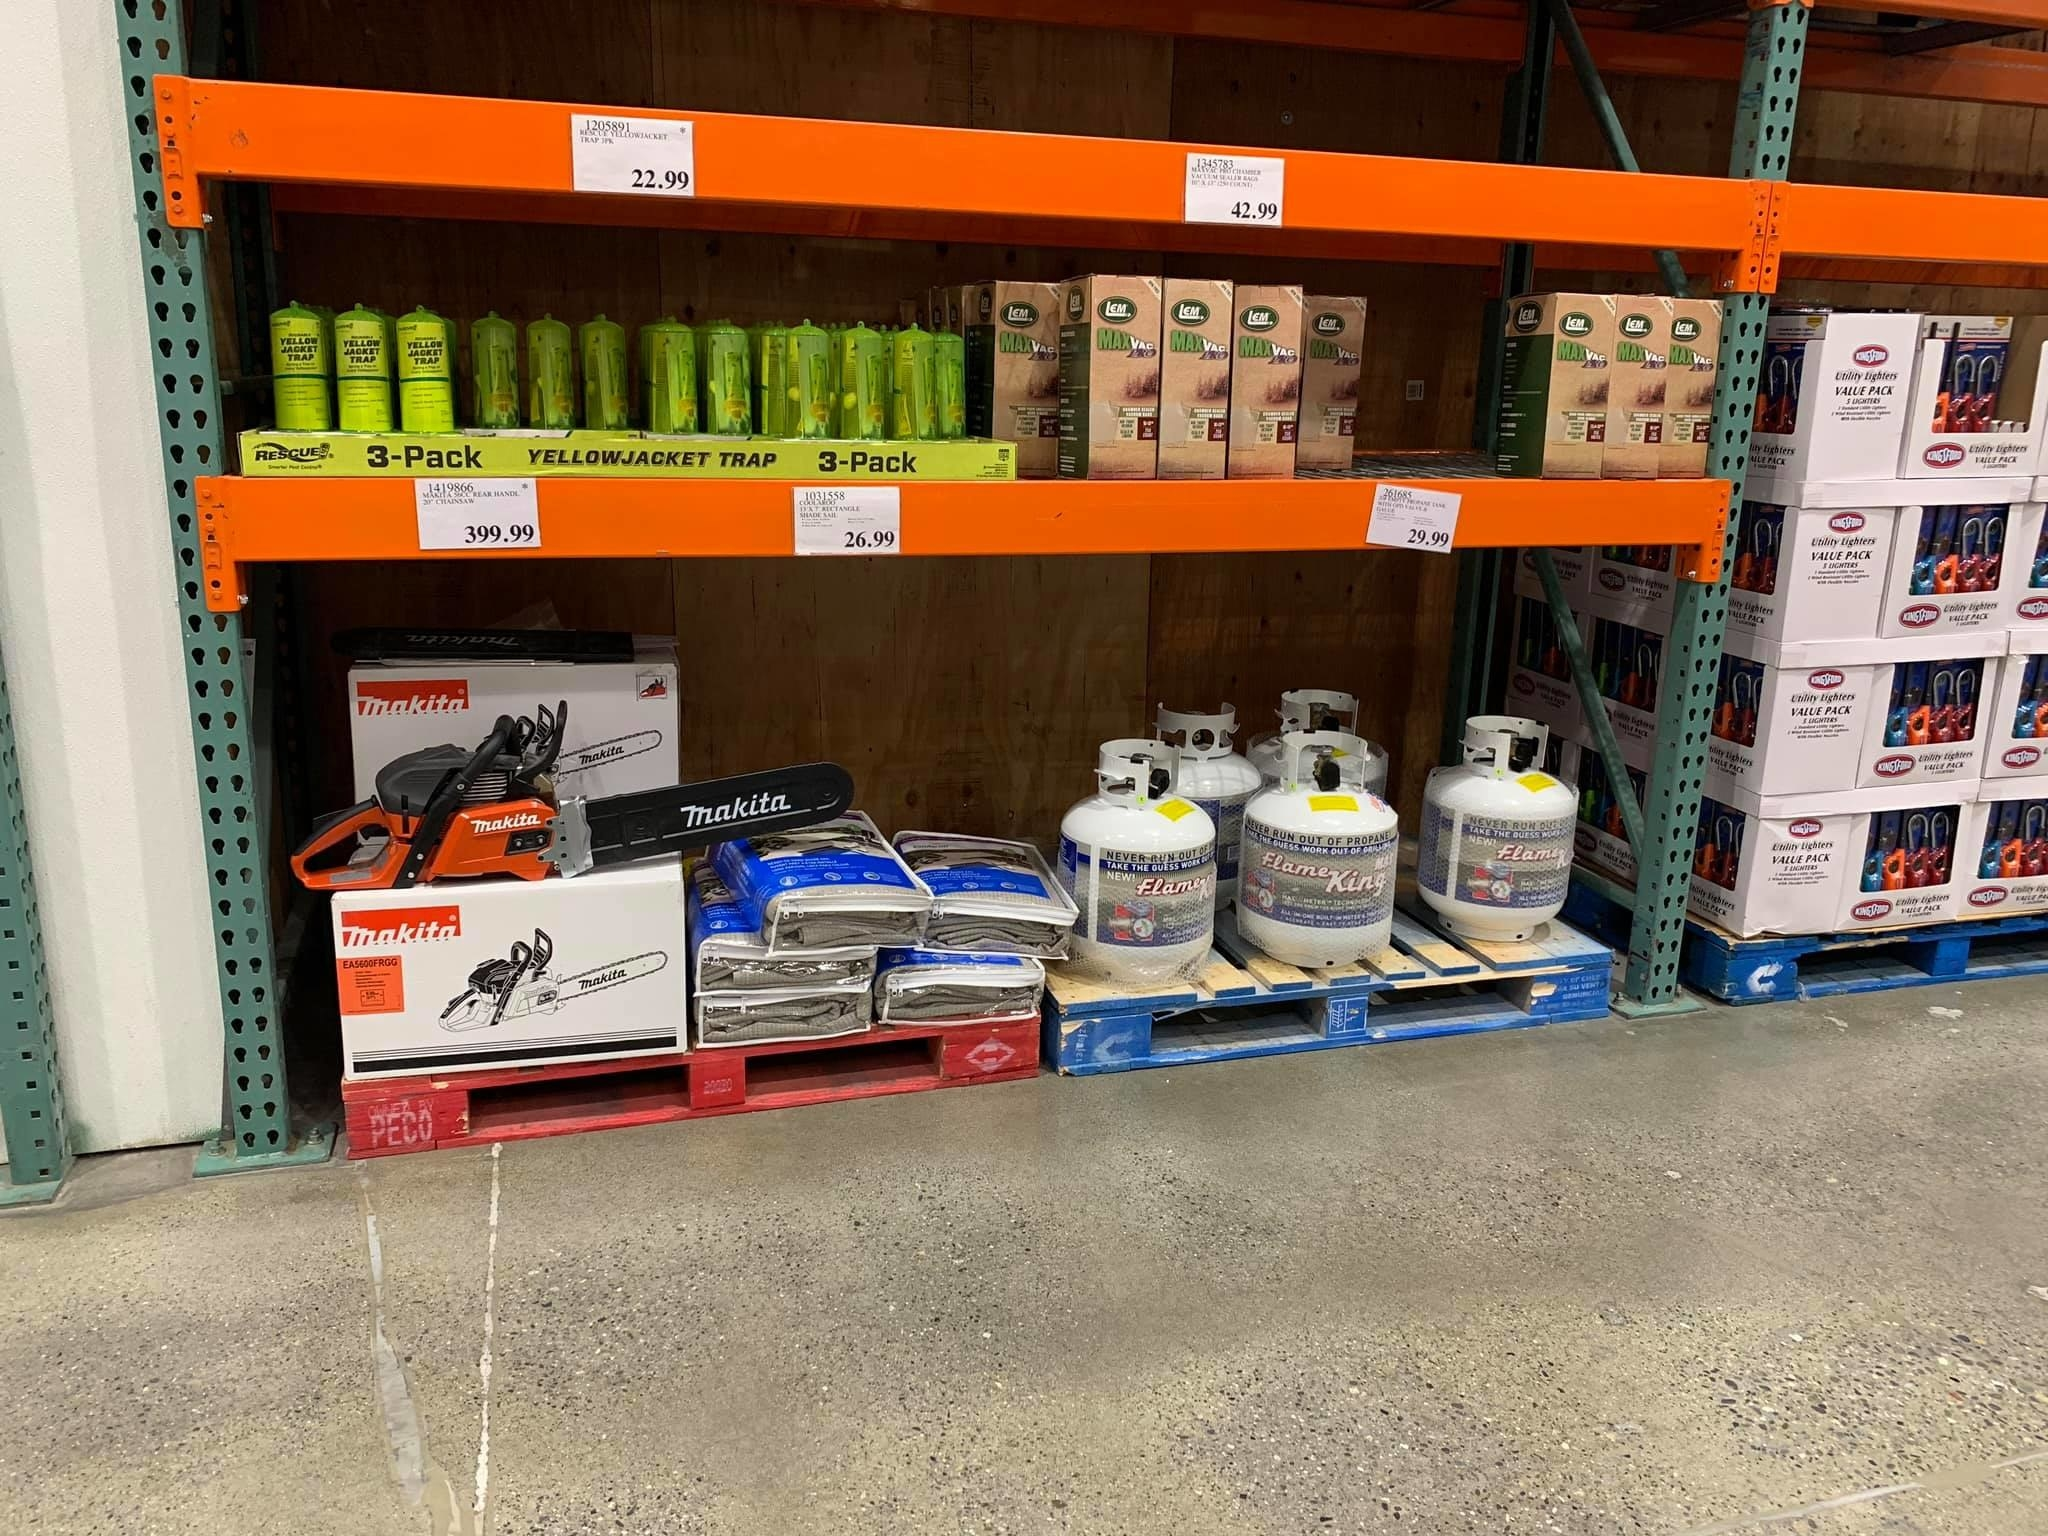 Propane tanks and chainsaws at Costco Alaska